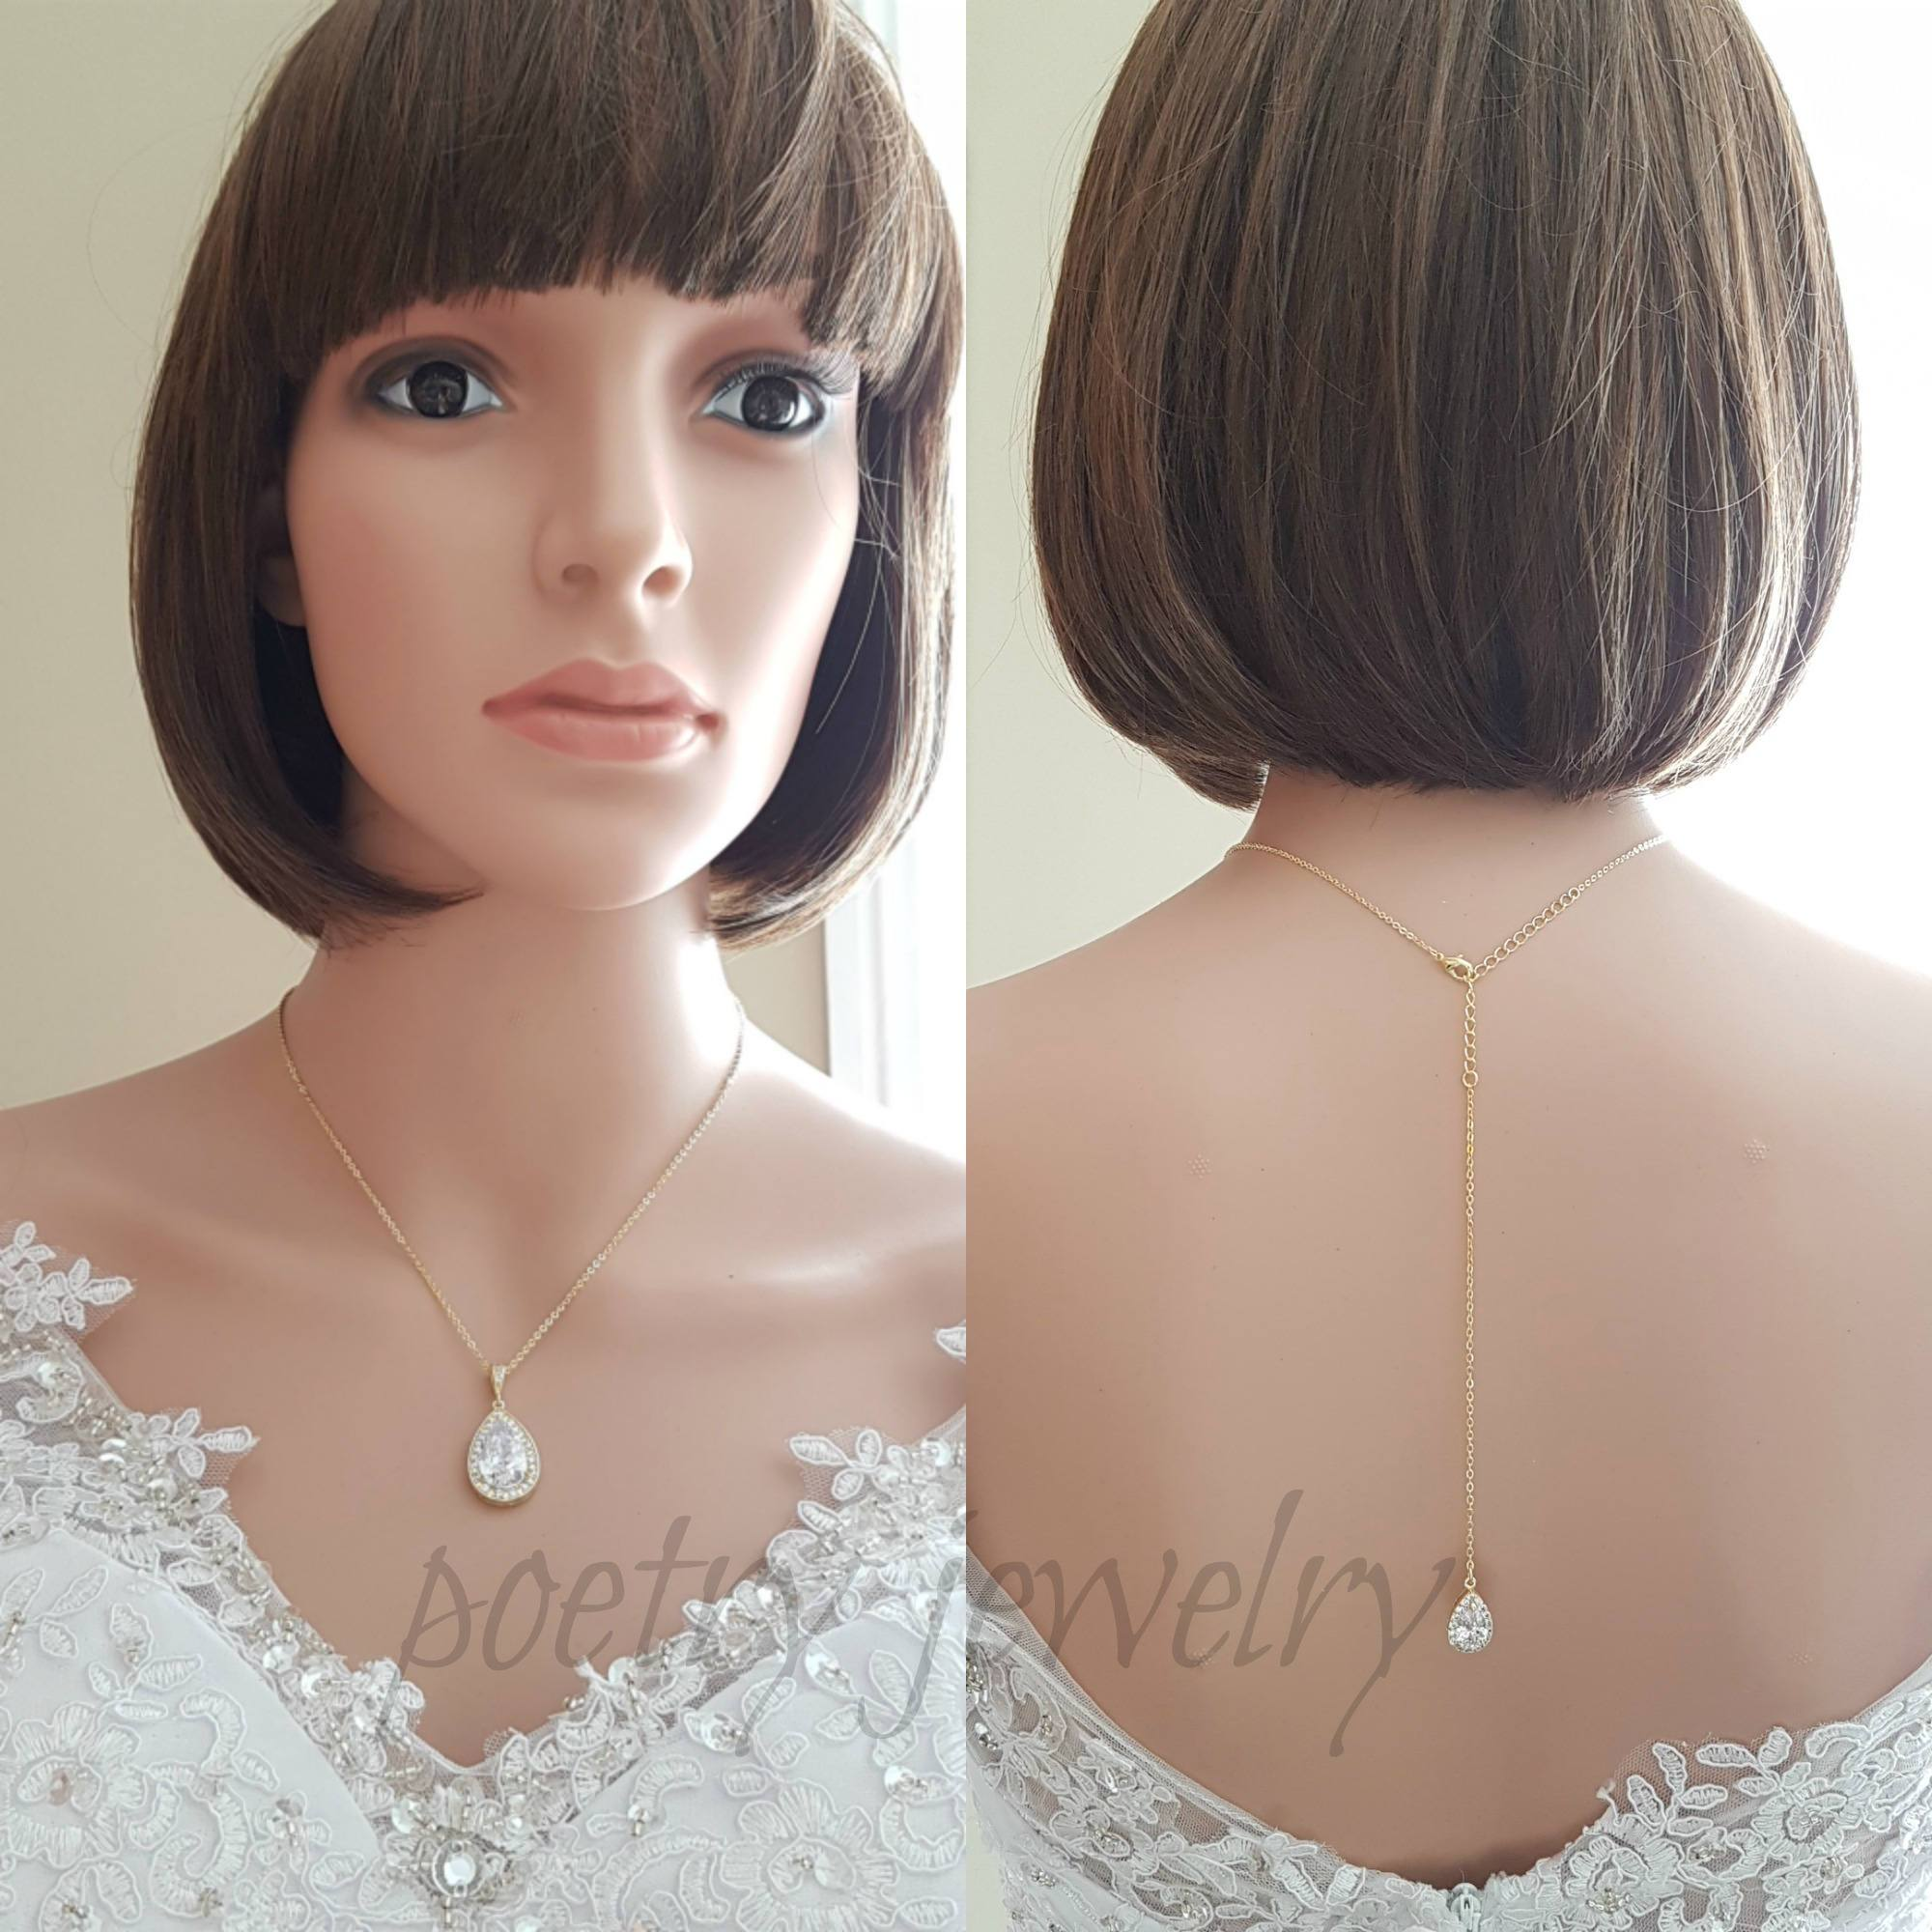 Simple Wedding Gold Back Necklace, Crystal Back Drop Bridal Necklace, Gold Bridesmaid Necklace Gift, Bridal Jewelry, Evelyn - PoetryDesigns